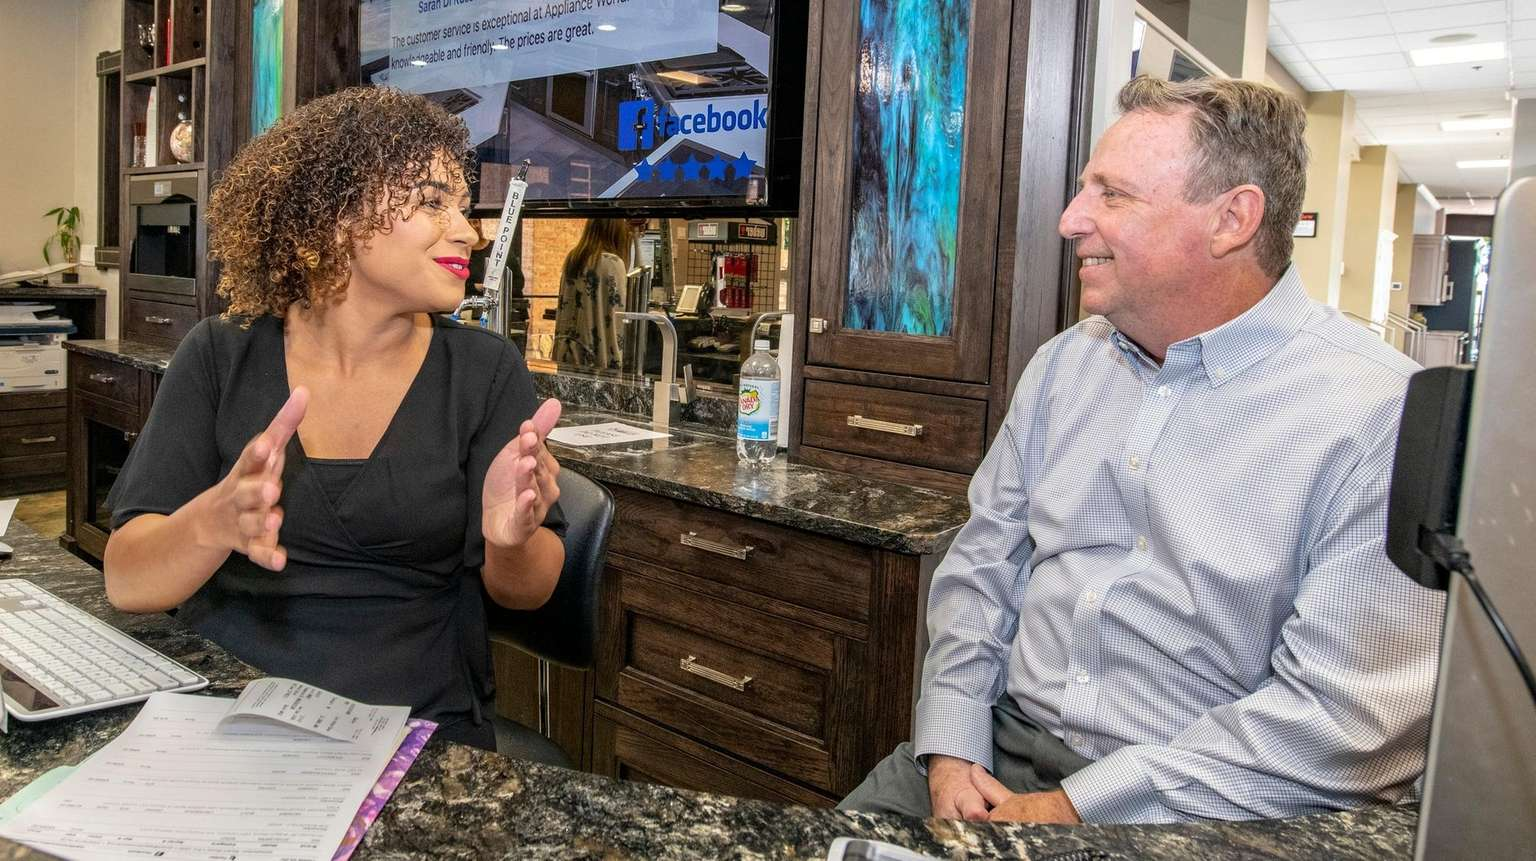 f444a84f9fc Administrative assistant DeAnna Meringola talks with owner Kevin  Nathan nbsp at Appliance World in Huntington on